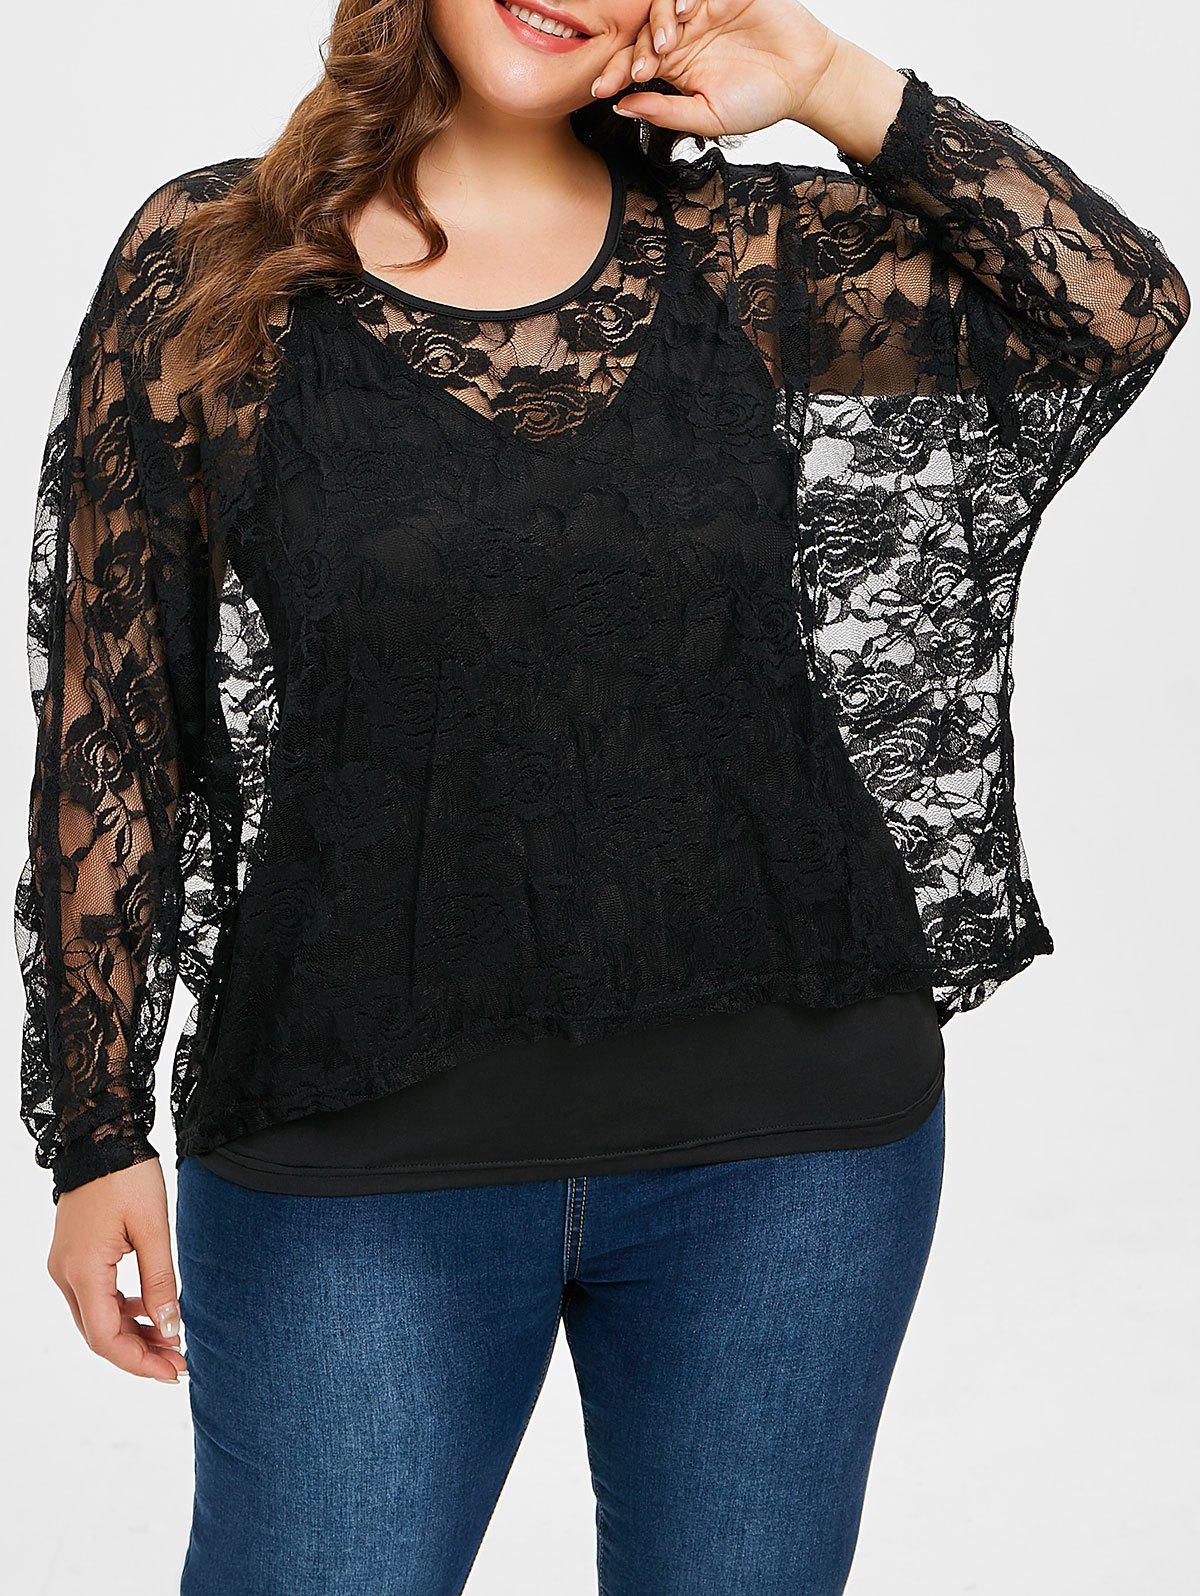 Chic Plus Size Sheer Lace Blouse with Cami Tank